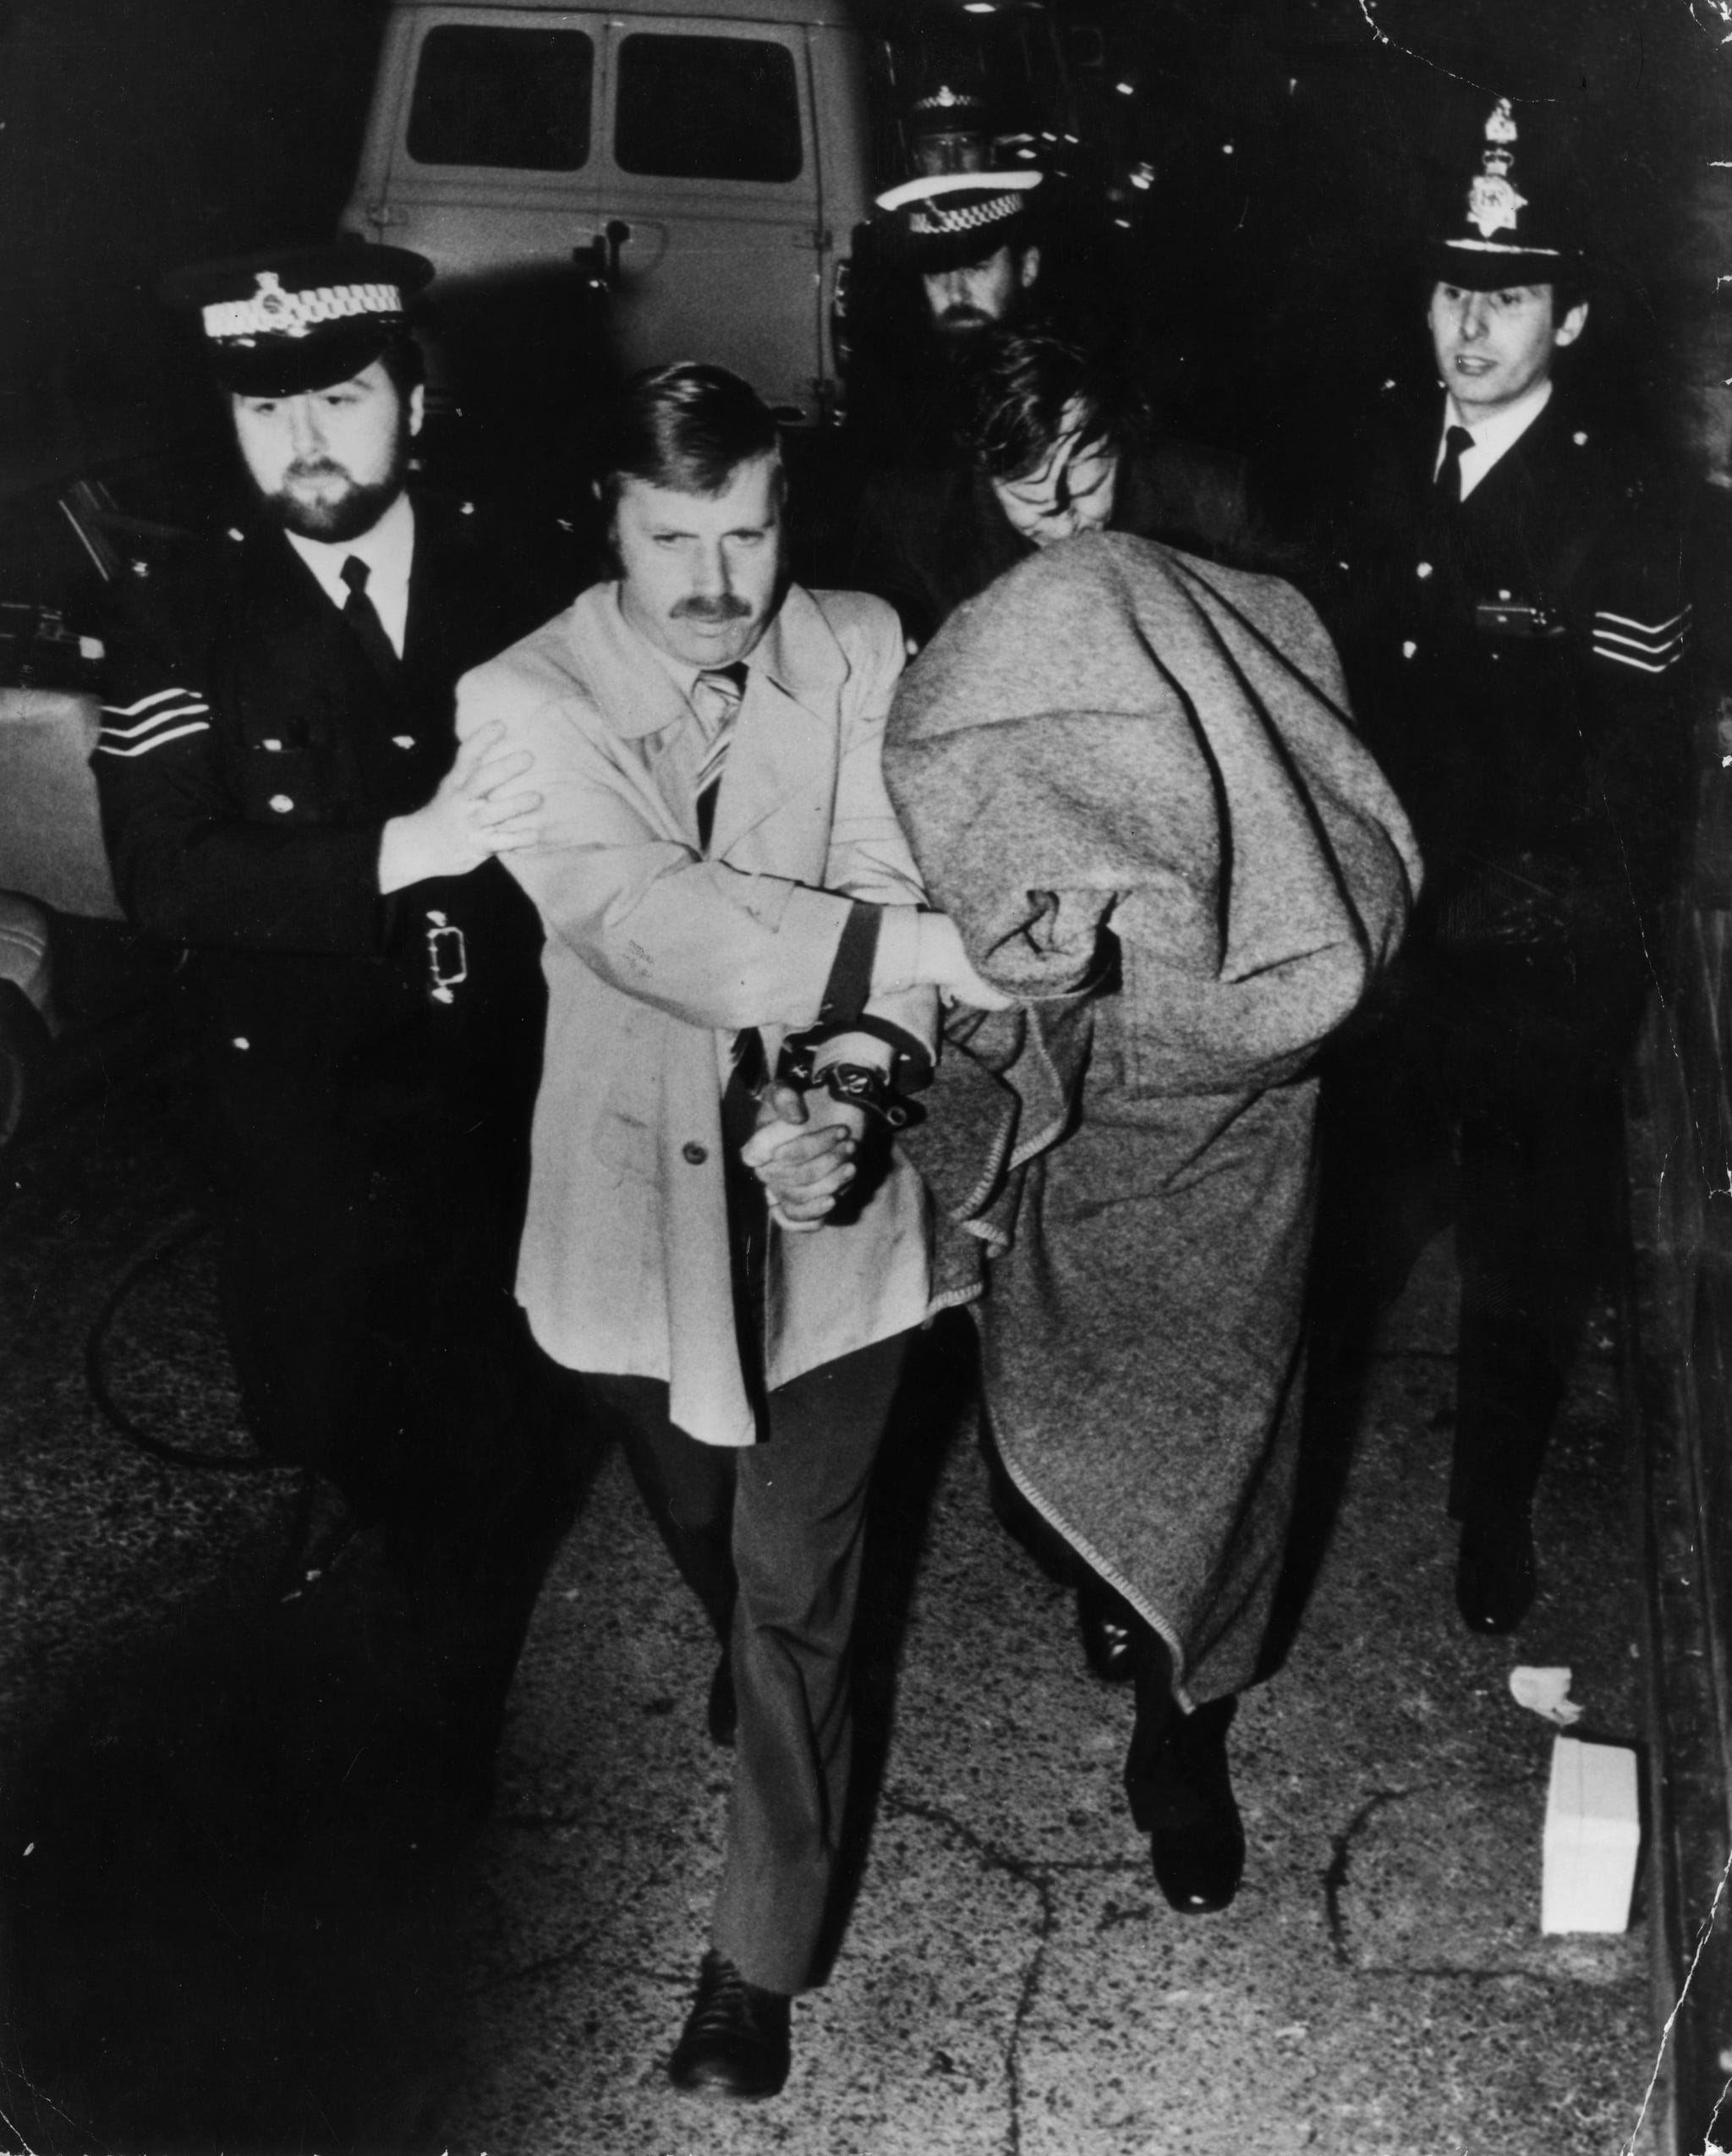 Police leading murderer Peter Sutcliffe, known as the Yorkshire Ripper, into Dewsbury Court under a blanket.   (Photo by Keystone/Getty Images)